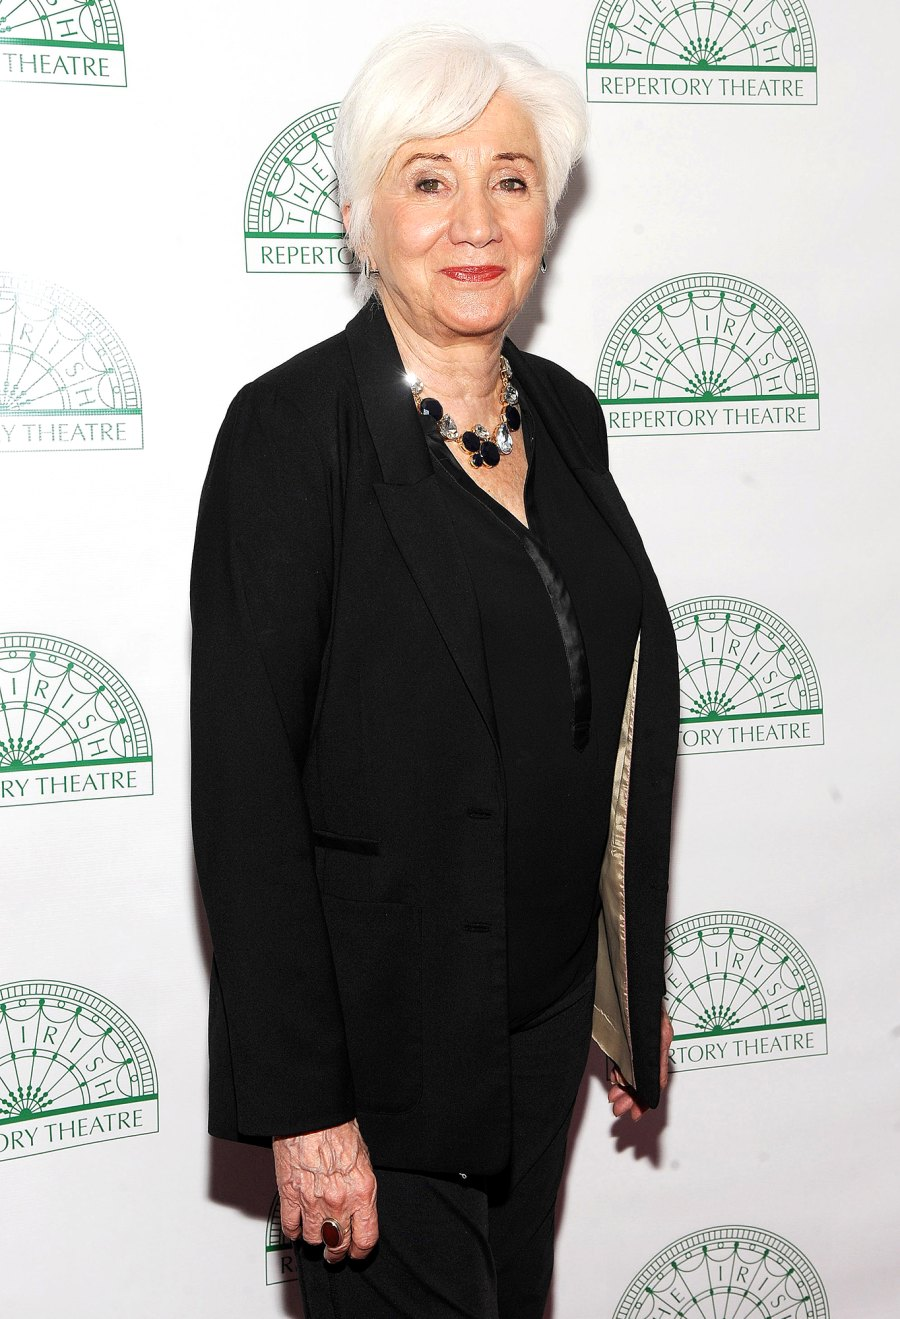 'Steel Magnolias' Star Olympia Dukakis Dies at 89 After 'Many Months of Failing Health'